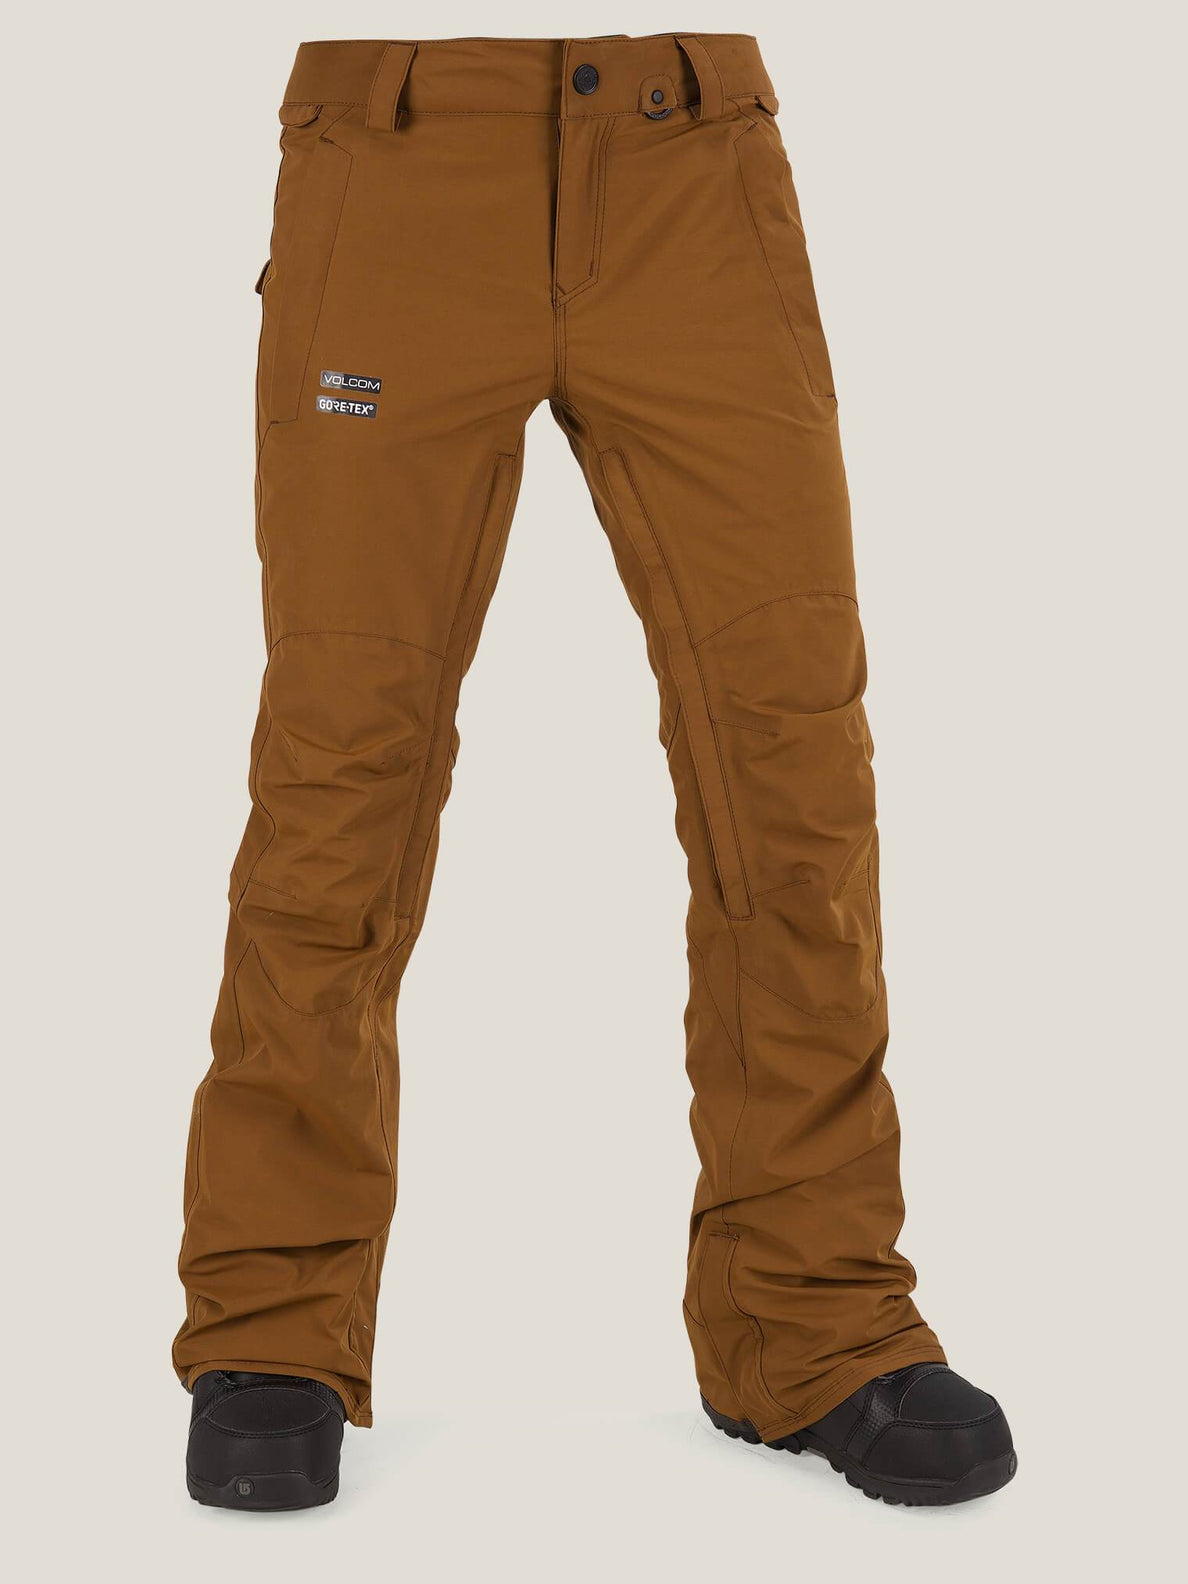 Knox Gore-tex® Pant In Copper, Front View